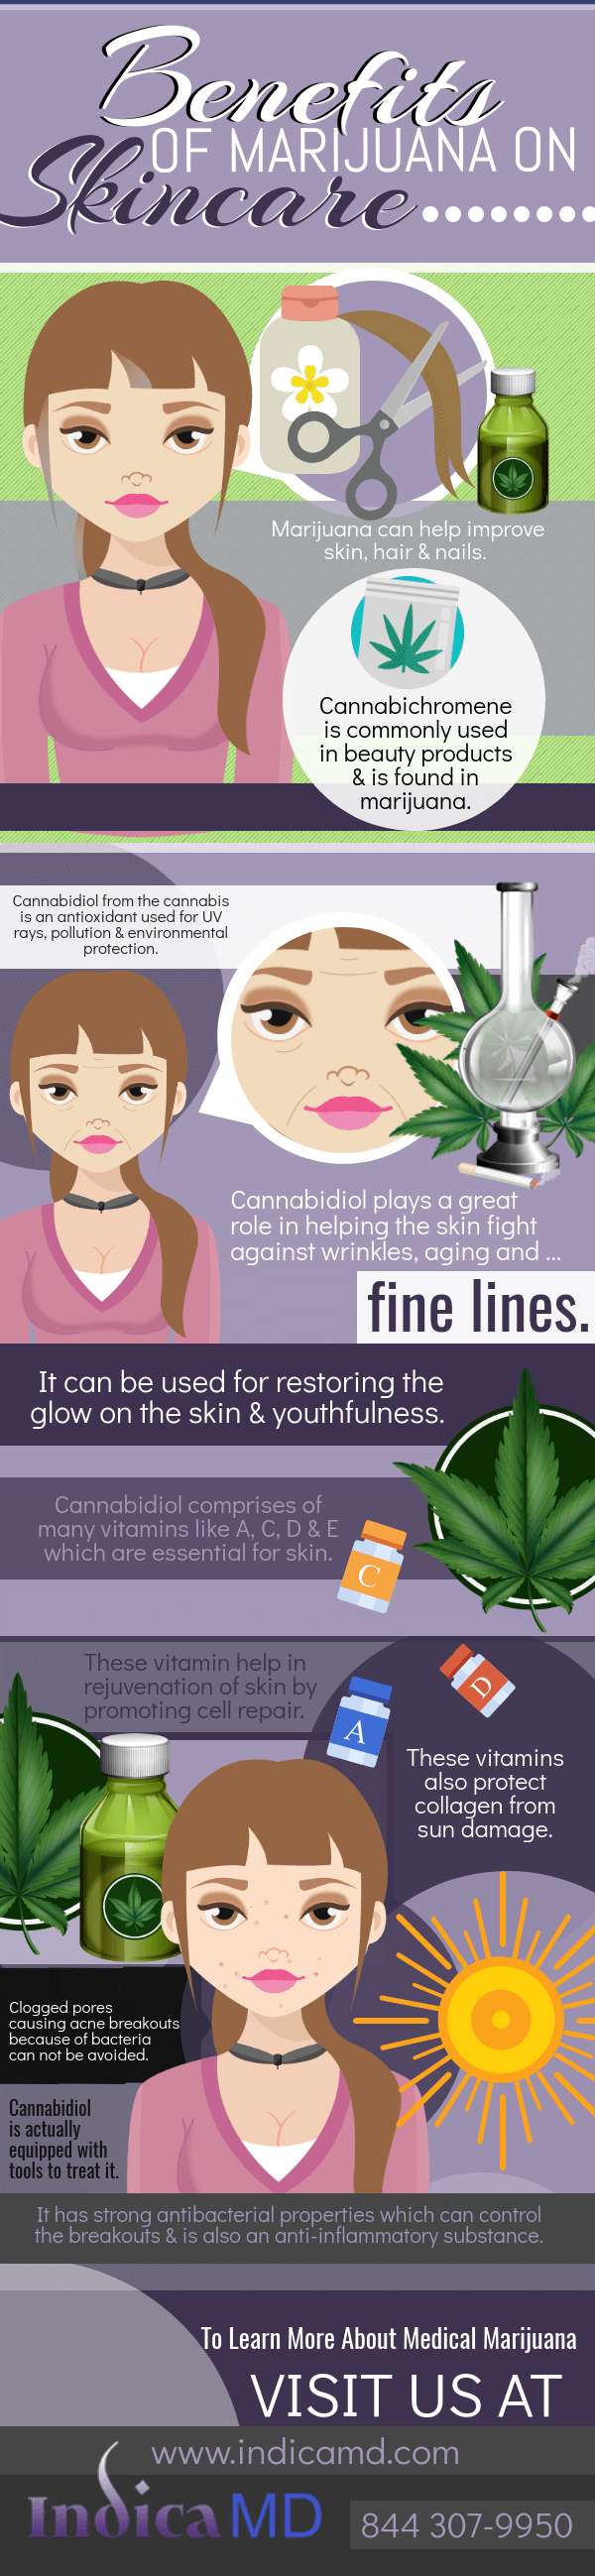 Benefits of Marijuana on Skincare